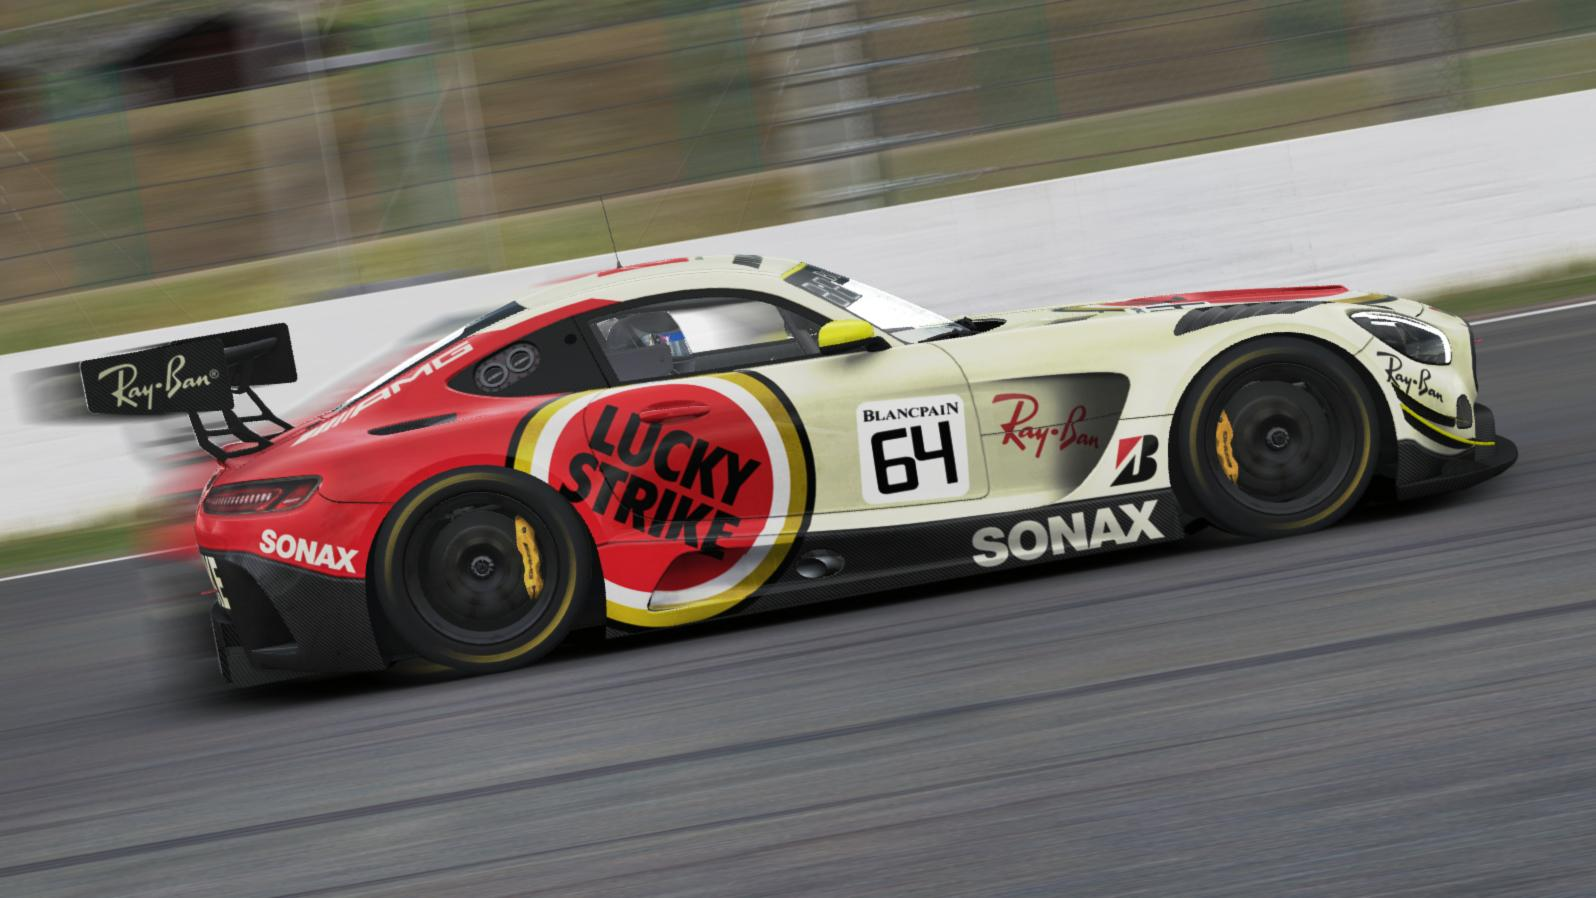 Preview of Mercedes Benz AMG GT3 LUCKY STRIKE by Justin S Davis